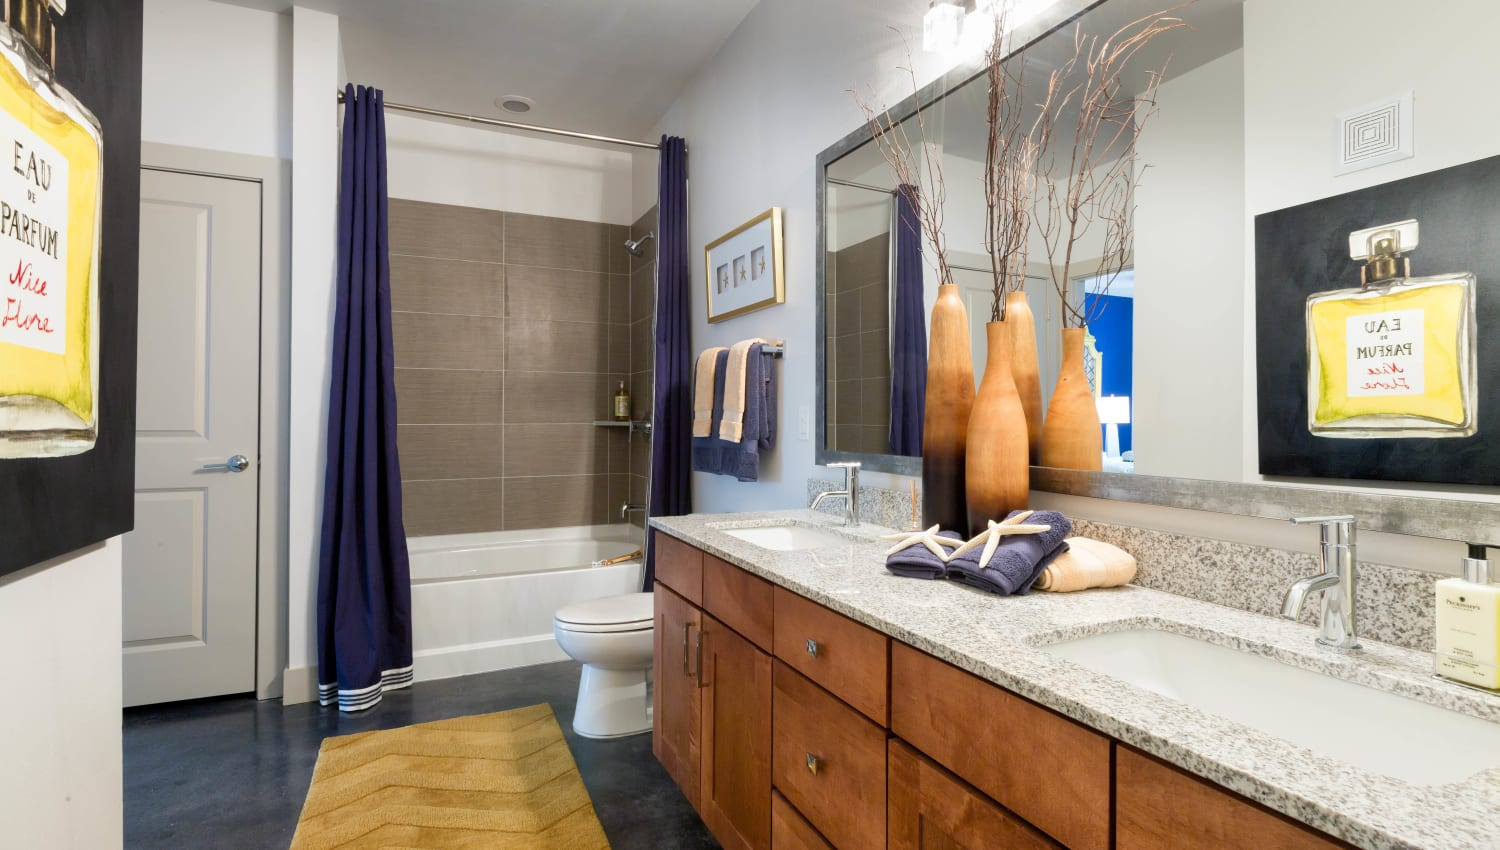 Spacious master bathroom with a custom tiled shower in a model home at The Davis in Fort Worth, Texas